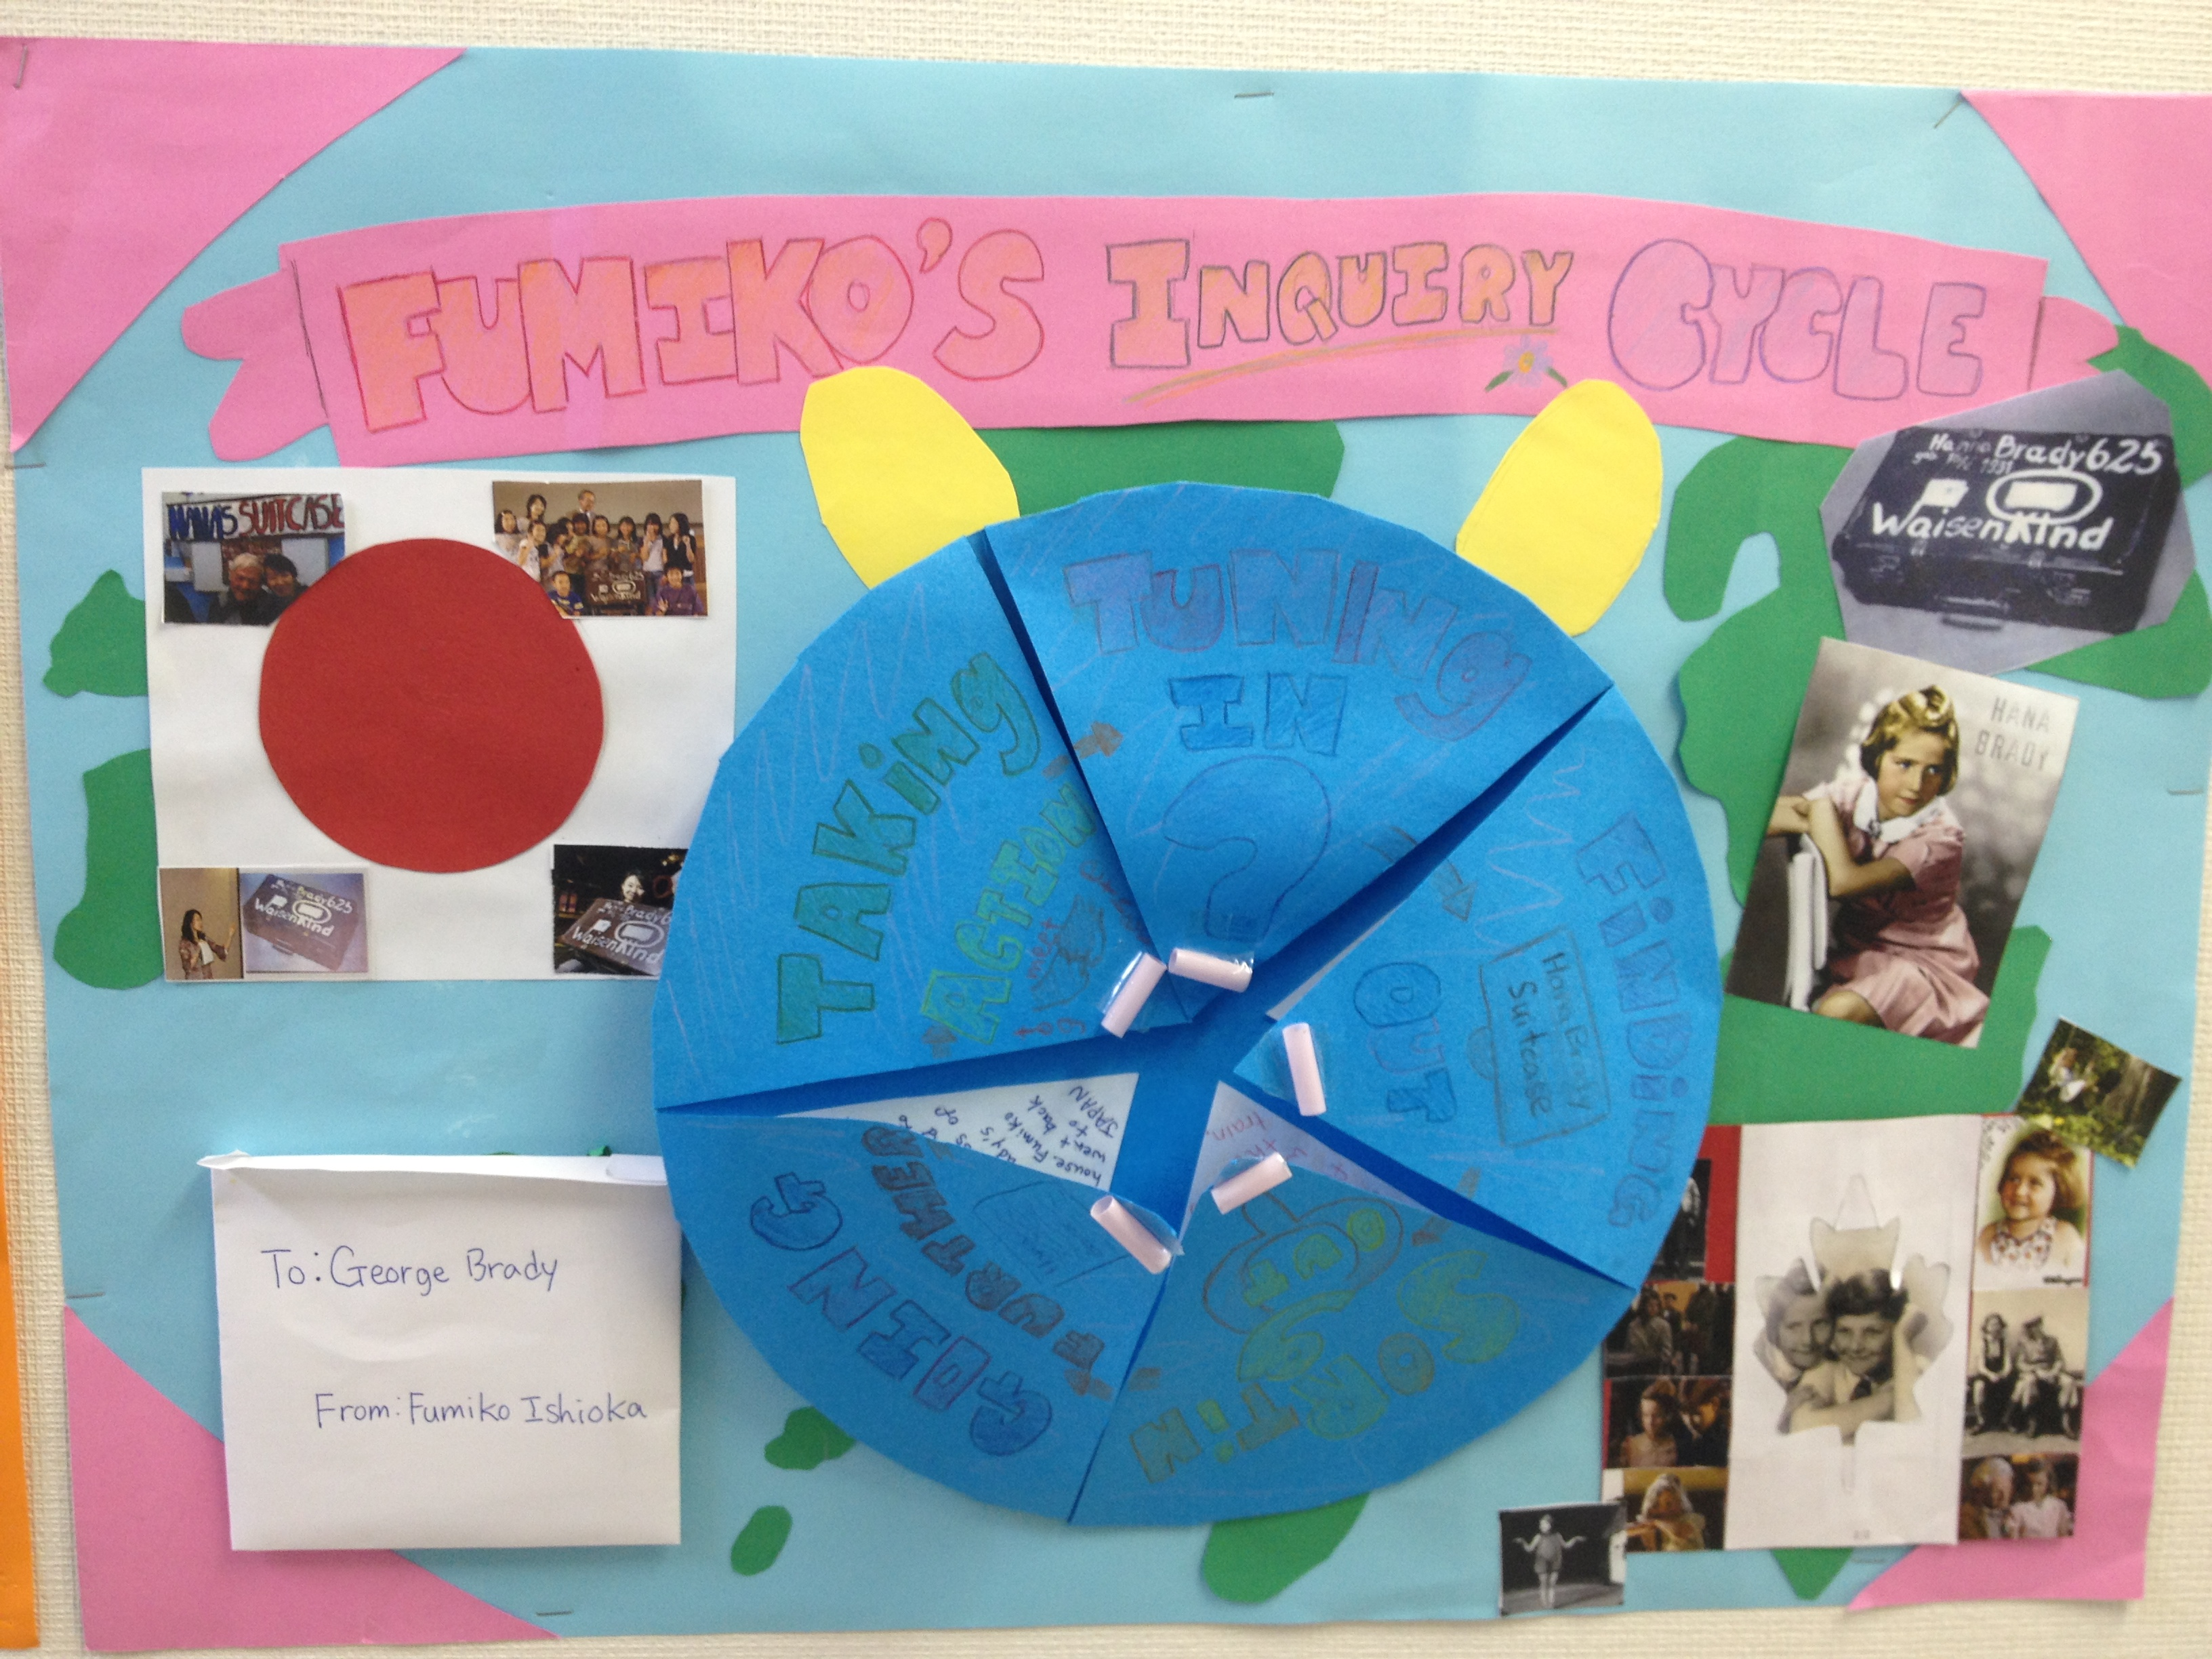 Fumiko's Inquiry Cycle